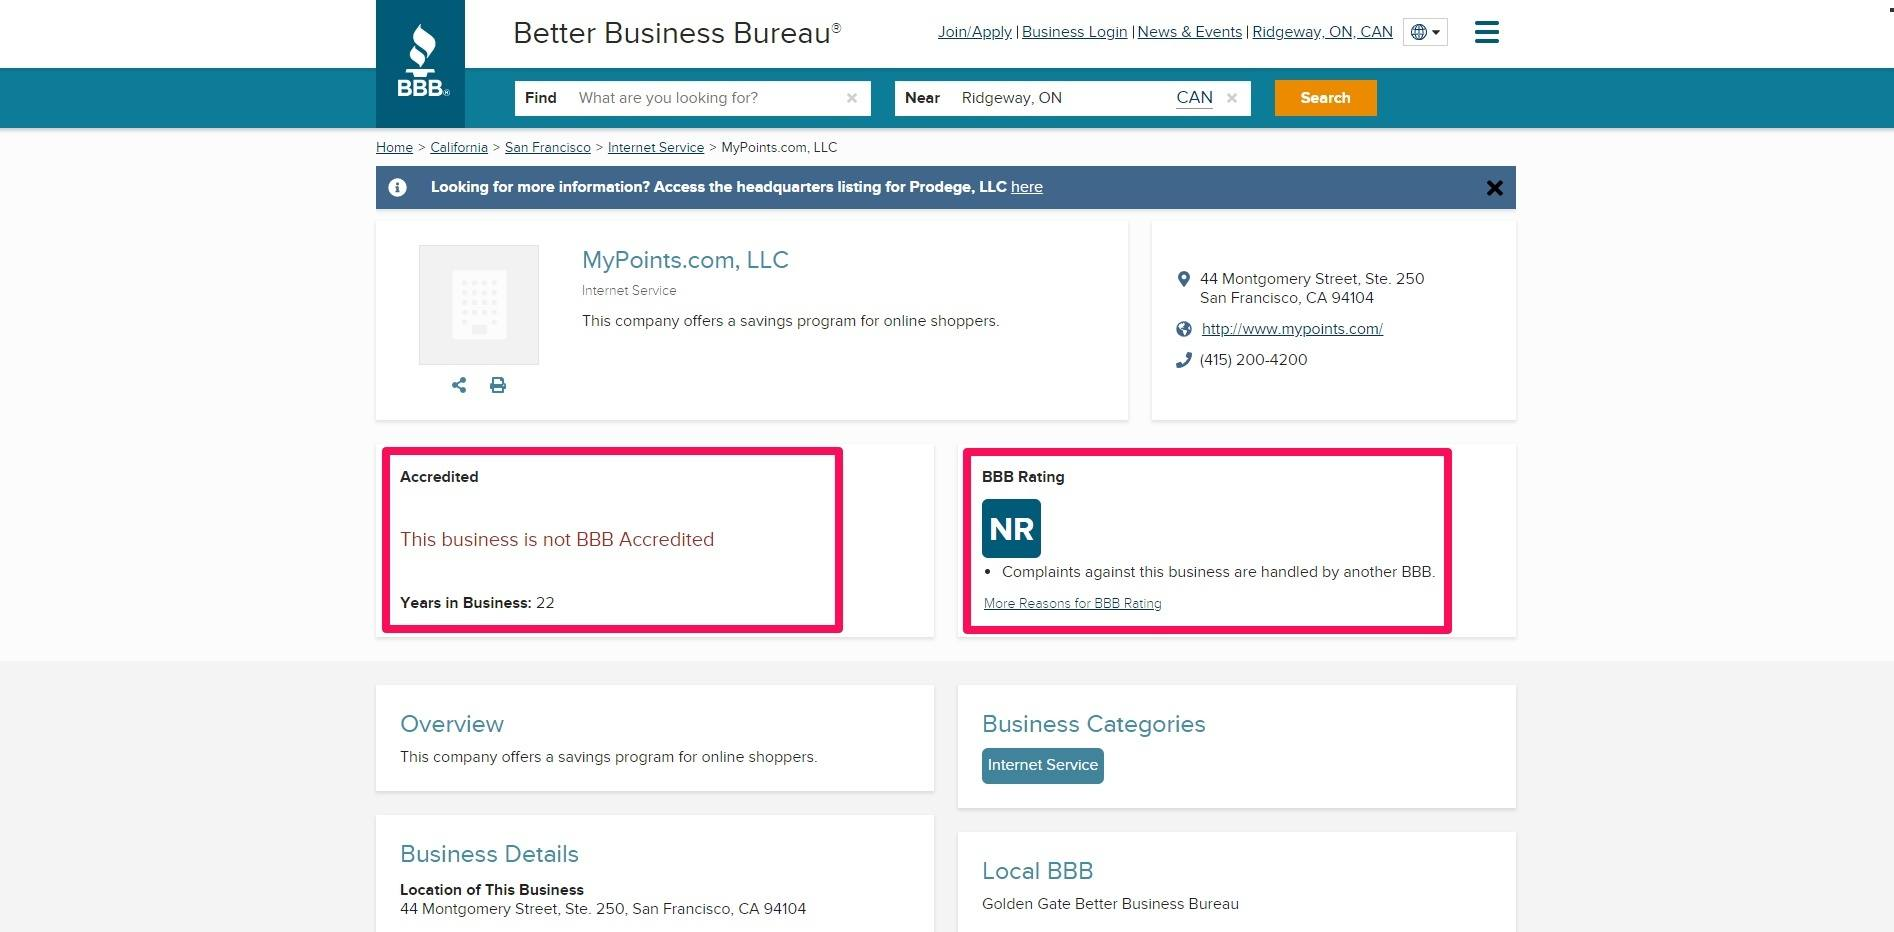 Better Business Bureau homepage